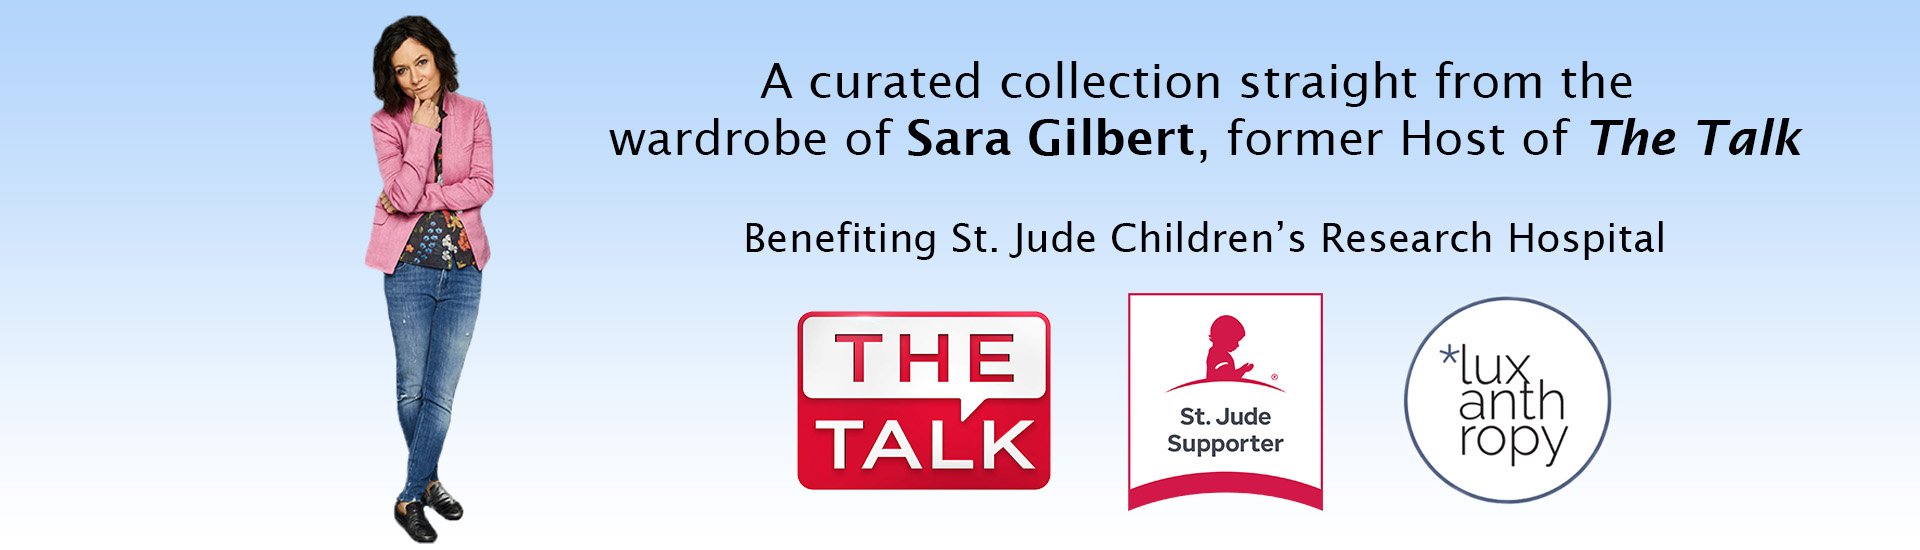 Sara Gilbert The Talk Collection